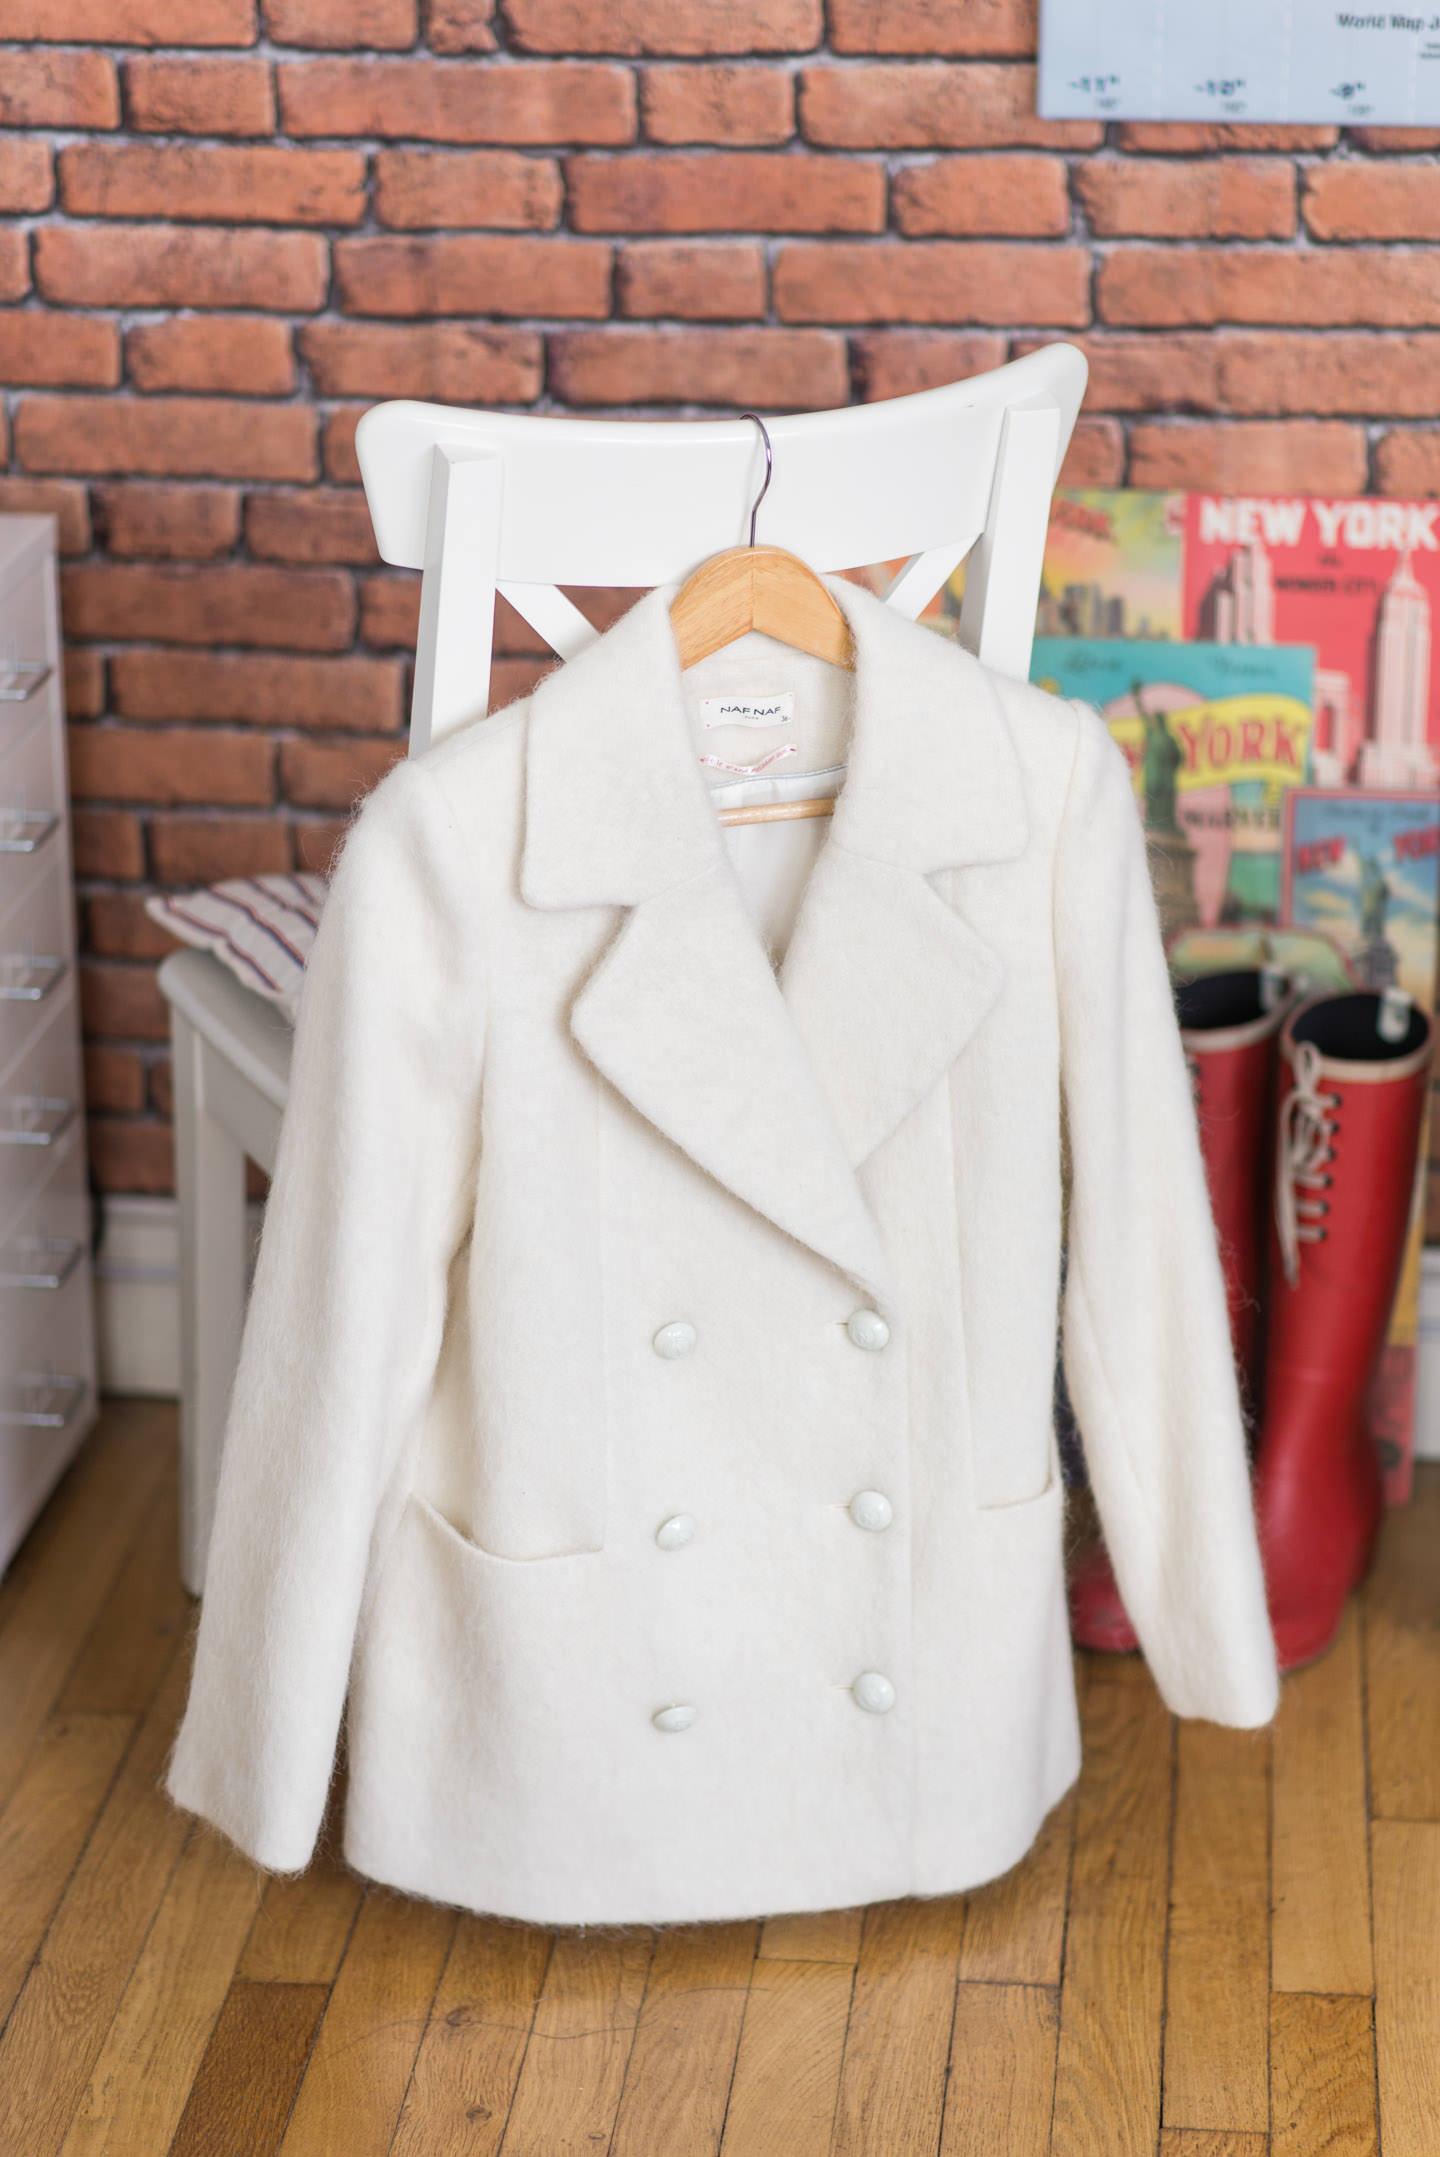 Blog-Mode-And-The-City-Lifestyle-Butin-soldes-2015-3